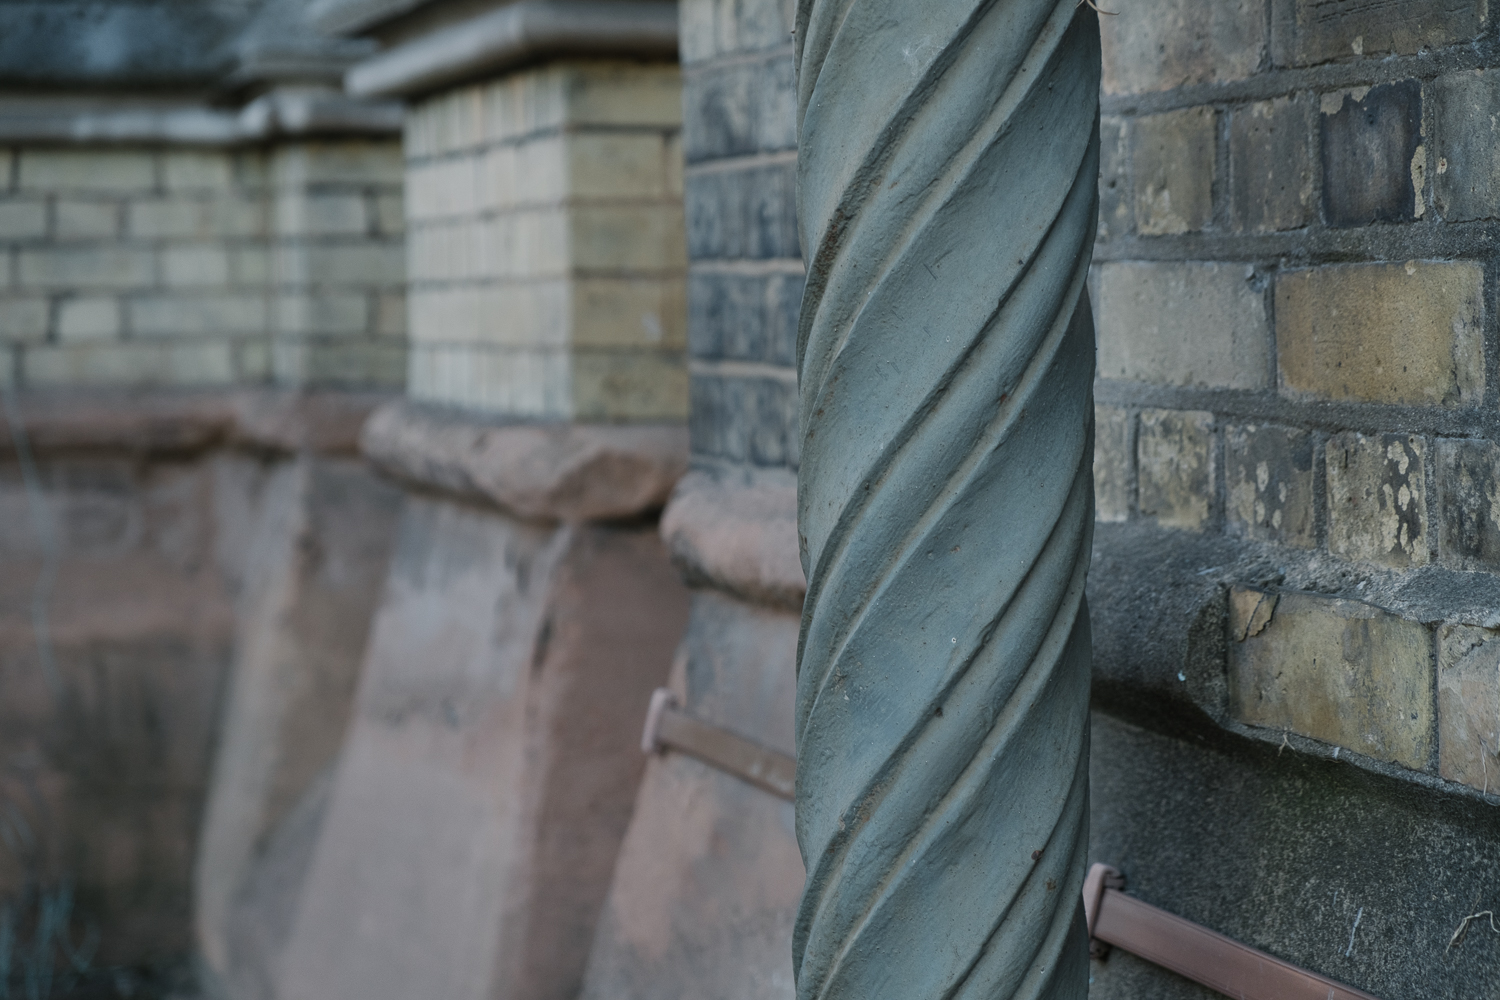 Bespoke 'twisted' drain pipe, the moulds are still in the possession of Thames Water